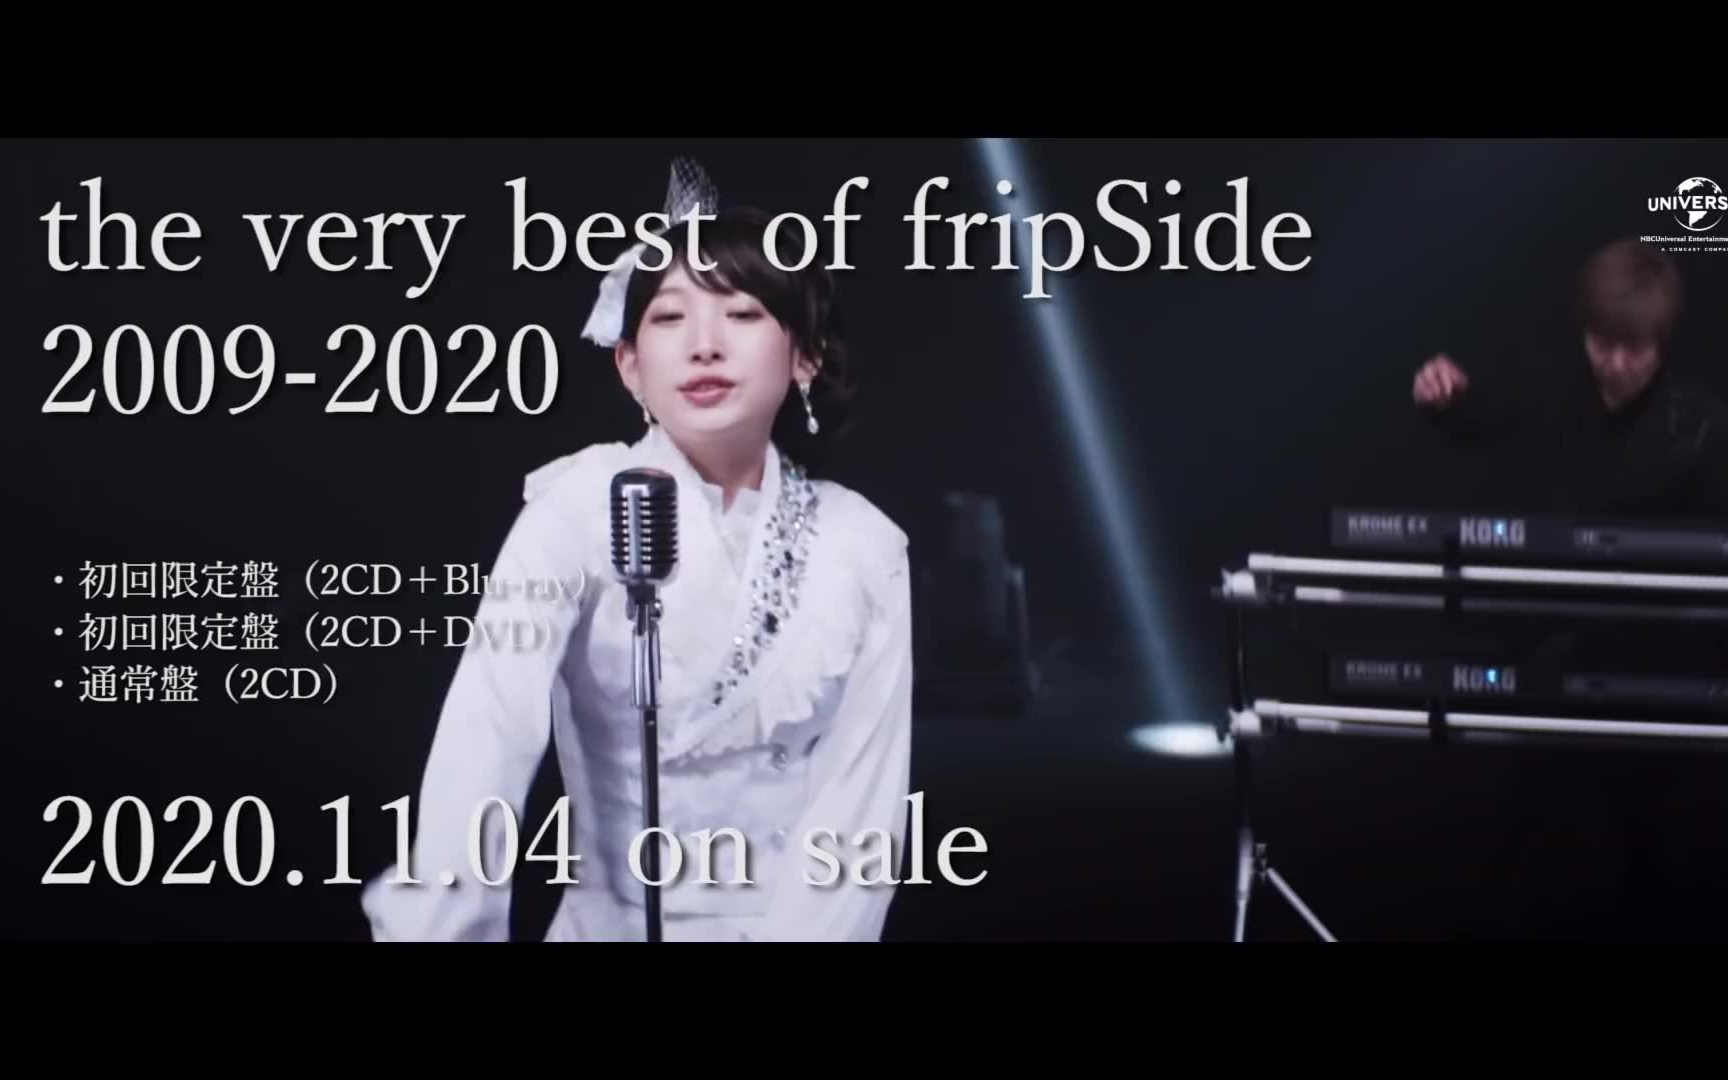 the very best of fripSide 2009-2020 spot